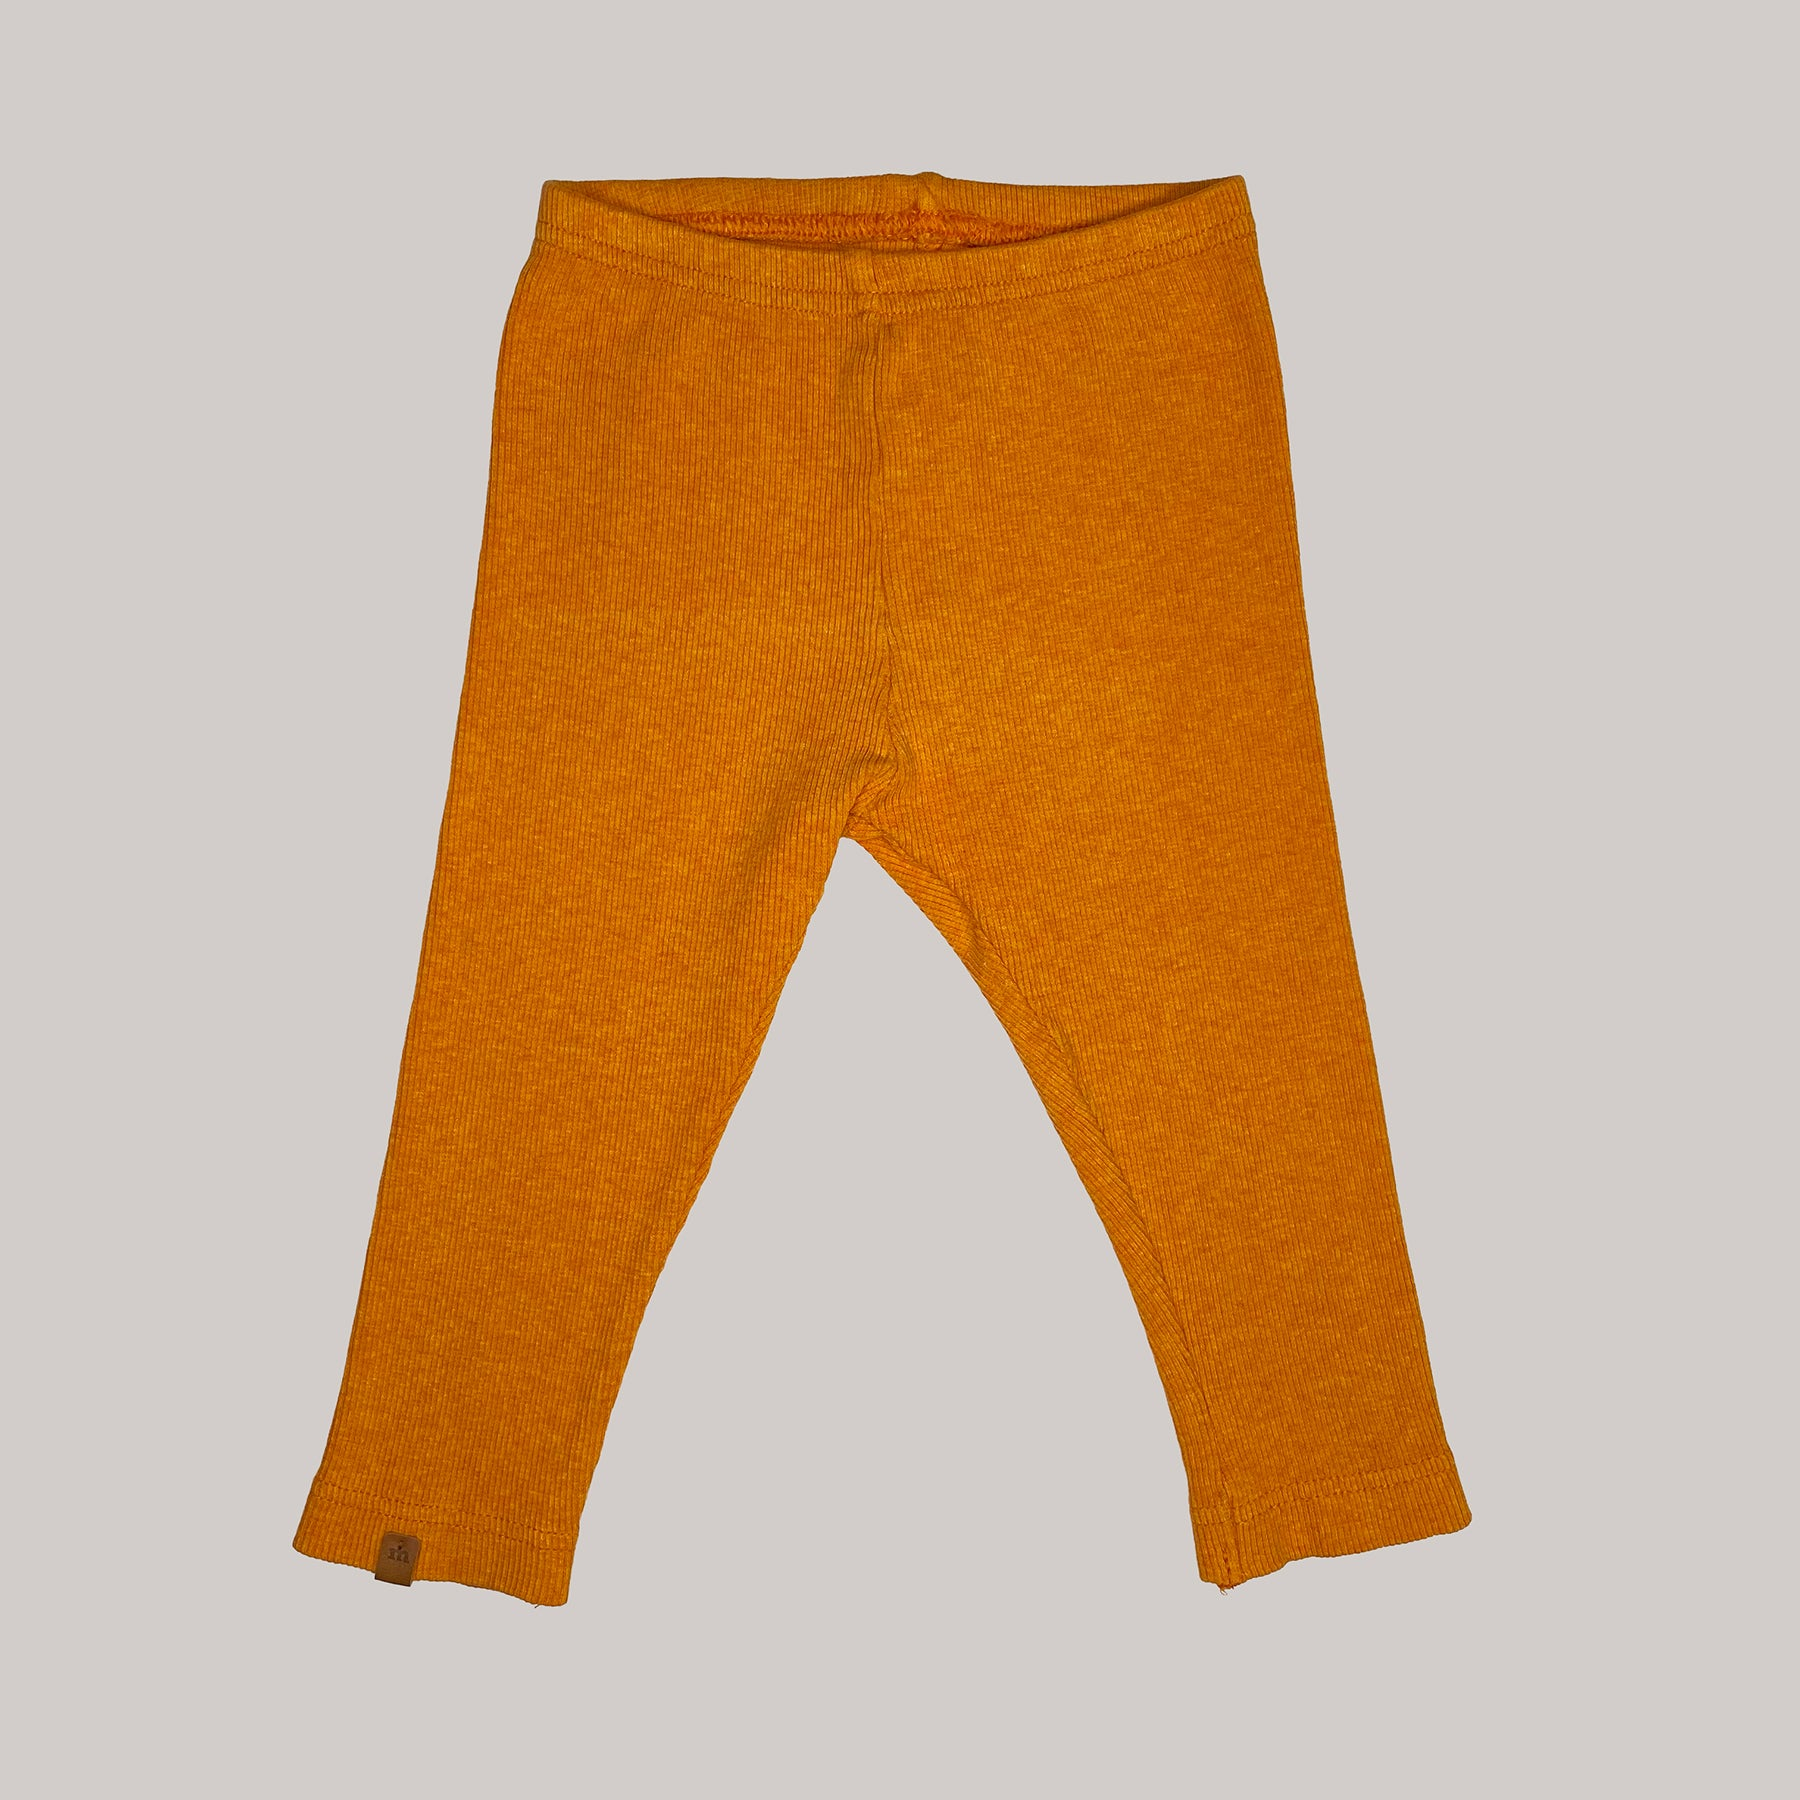 Re-wear : Metsola rib leggings, orange | 74/80cm